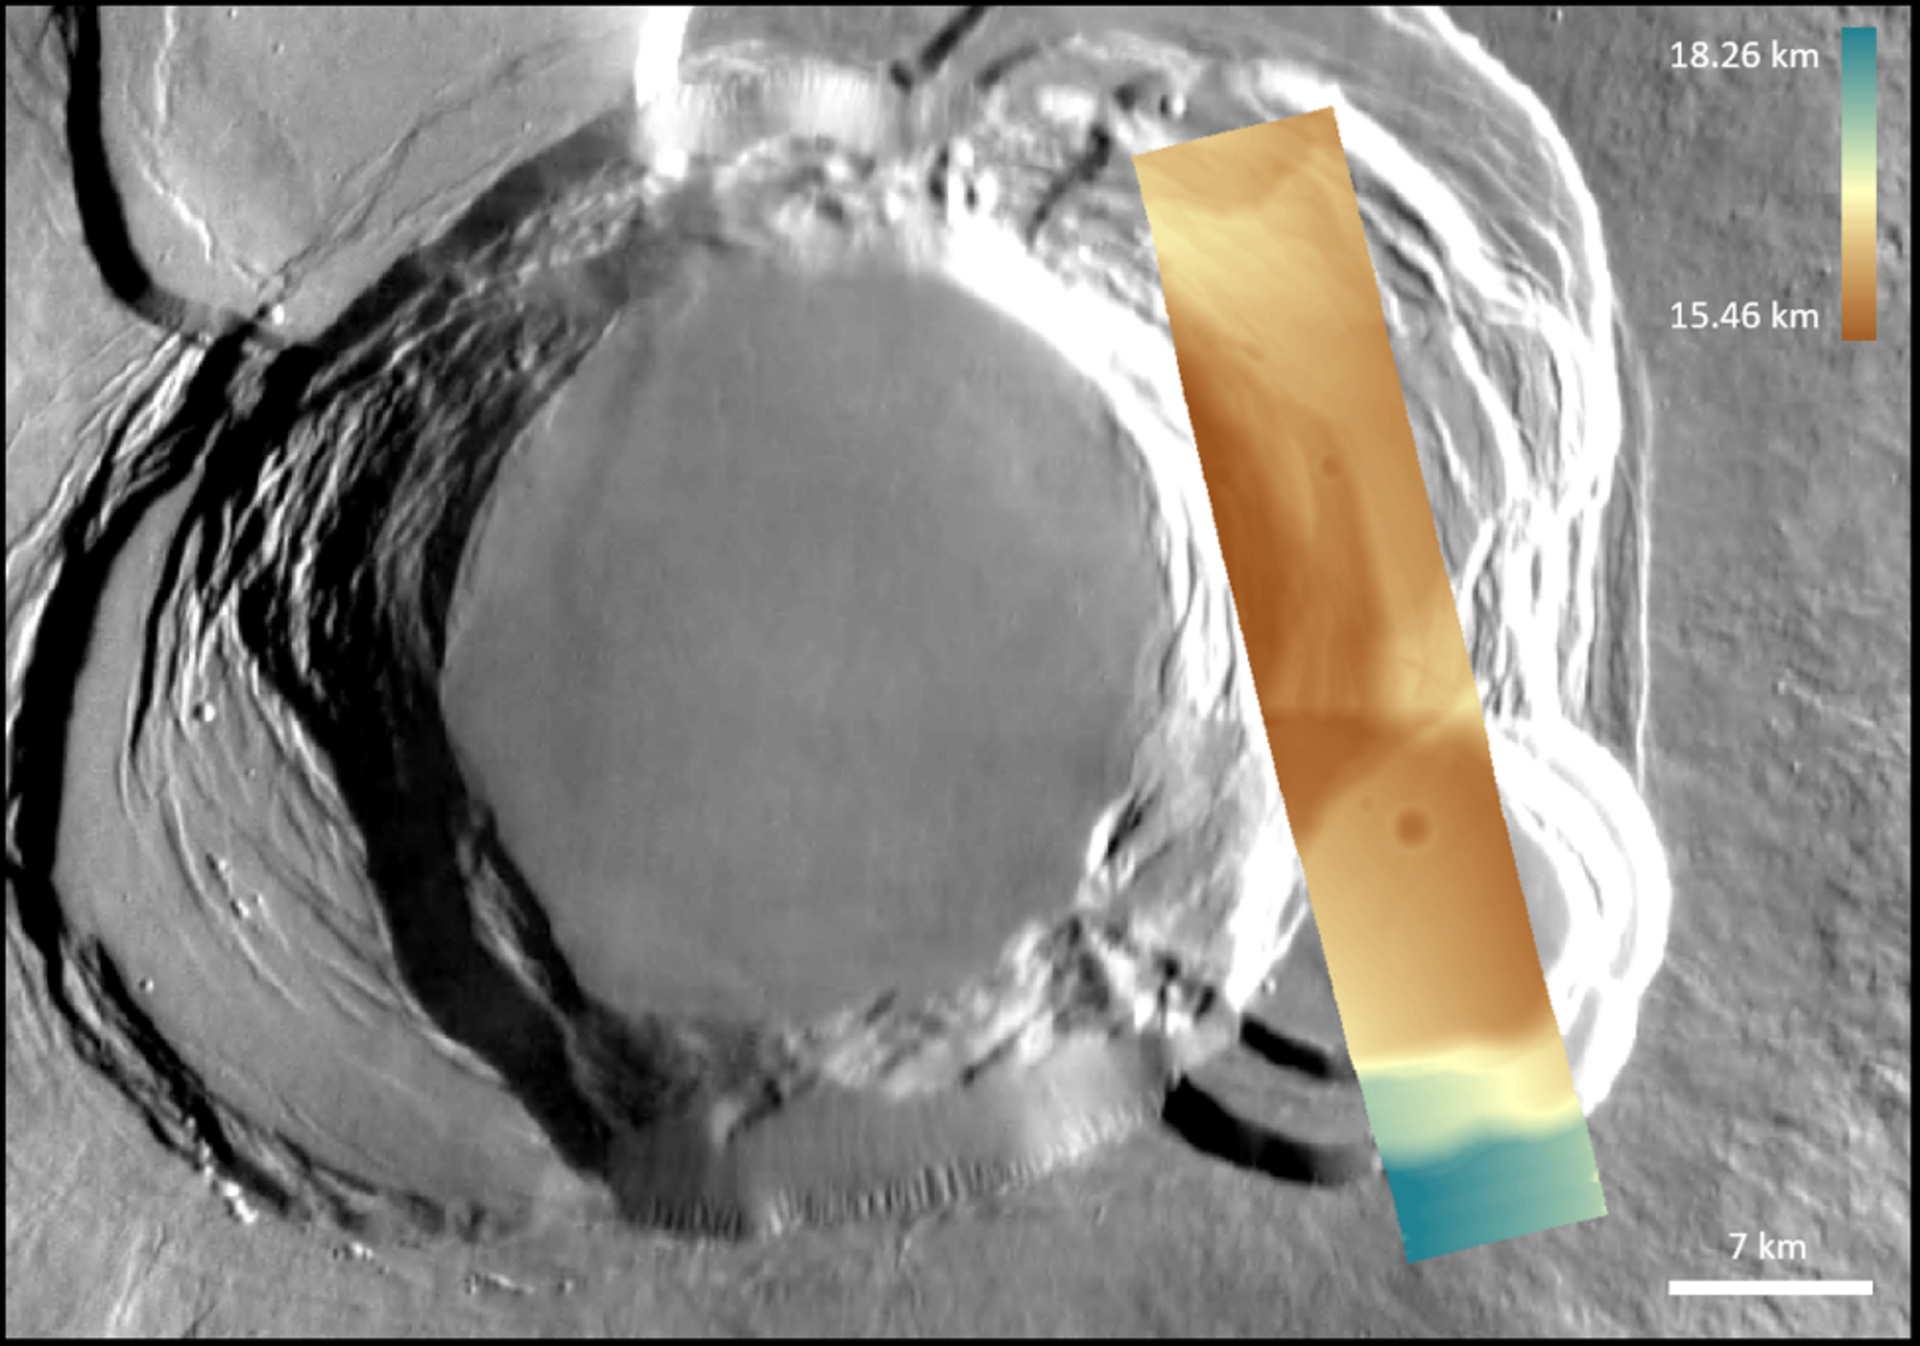 Ascraeus Mons – digital terrain model